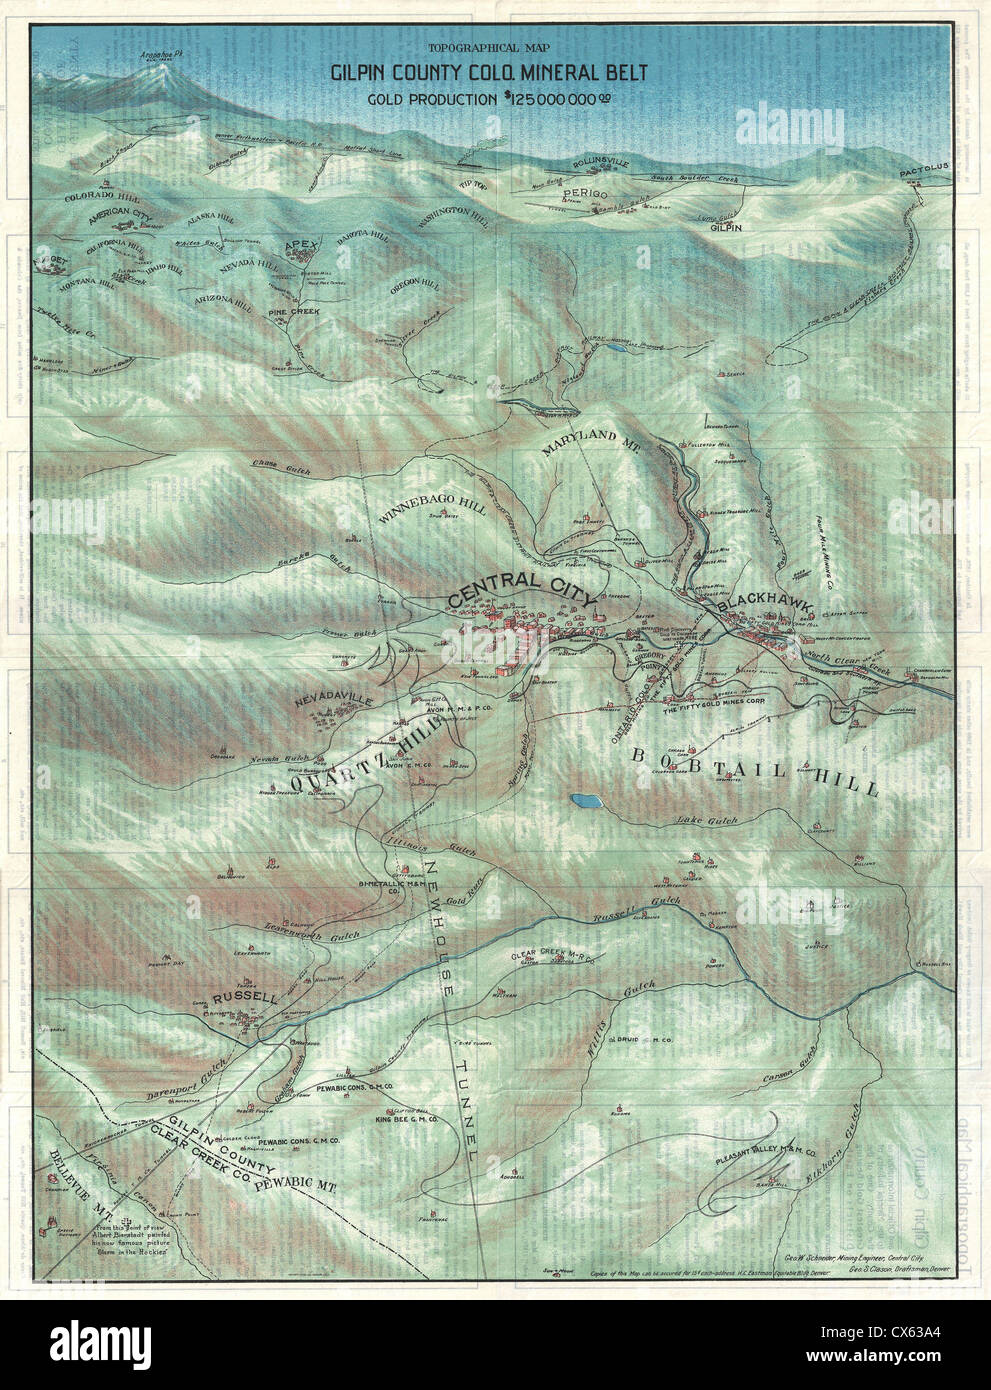 1904 Clason Map or View of the Gilpin Colorado Gold and Mineral Belt - Stock Image